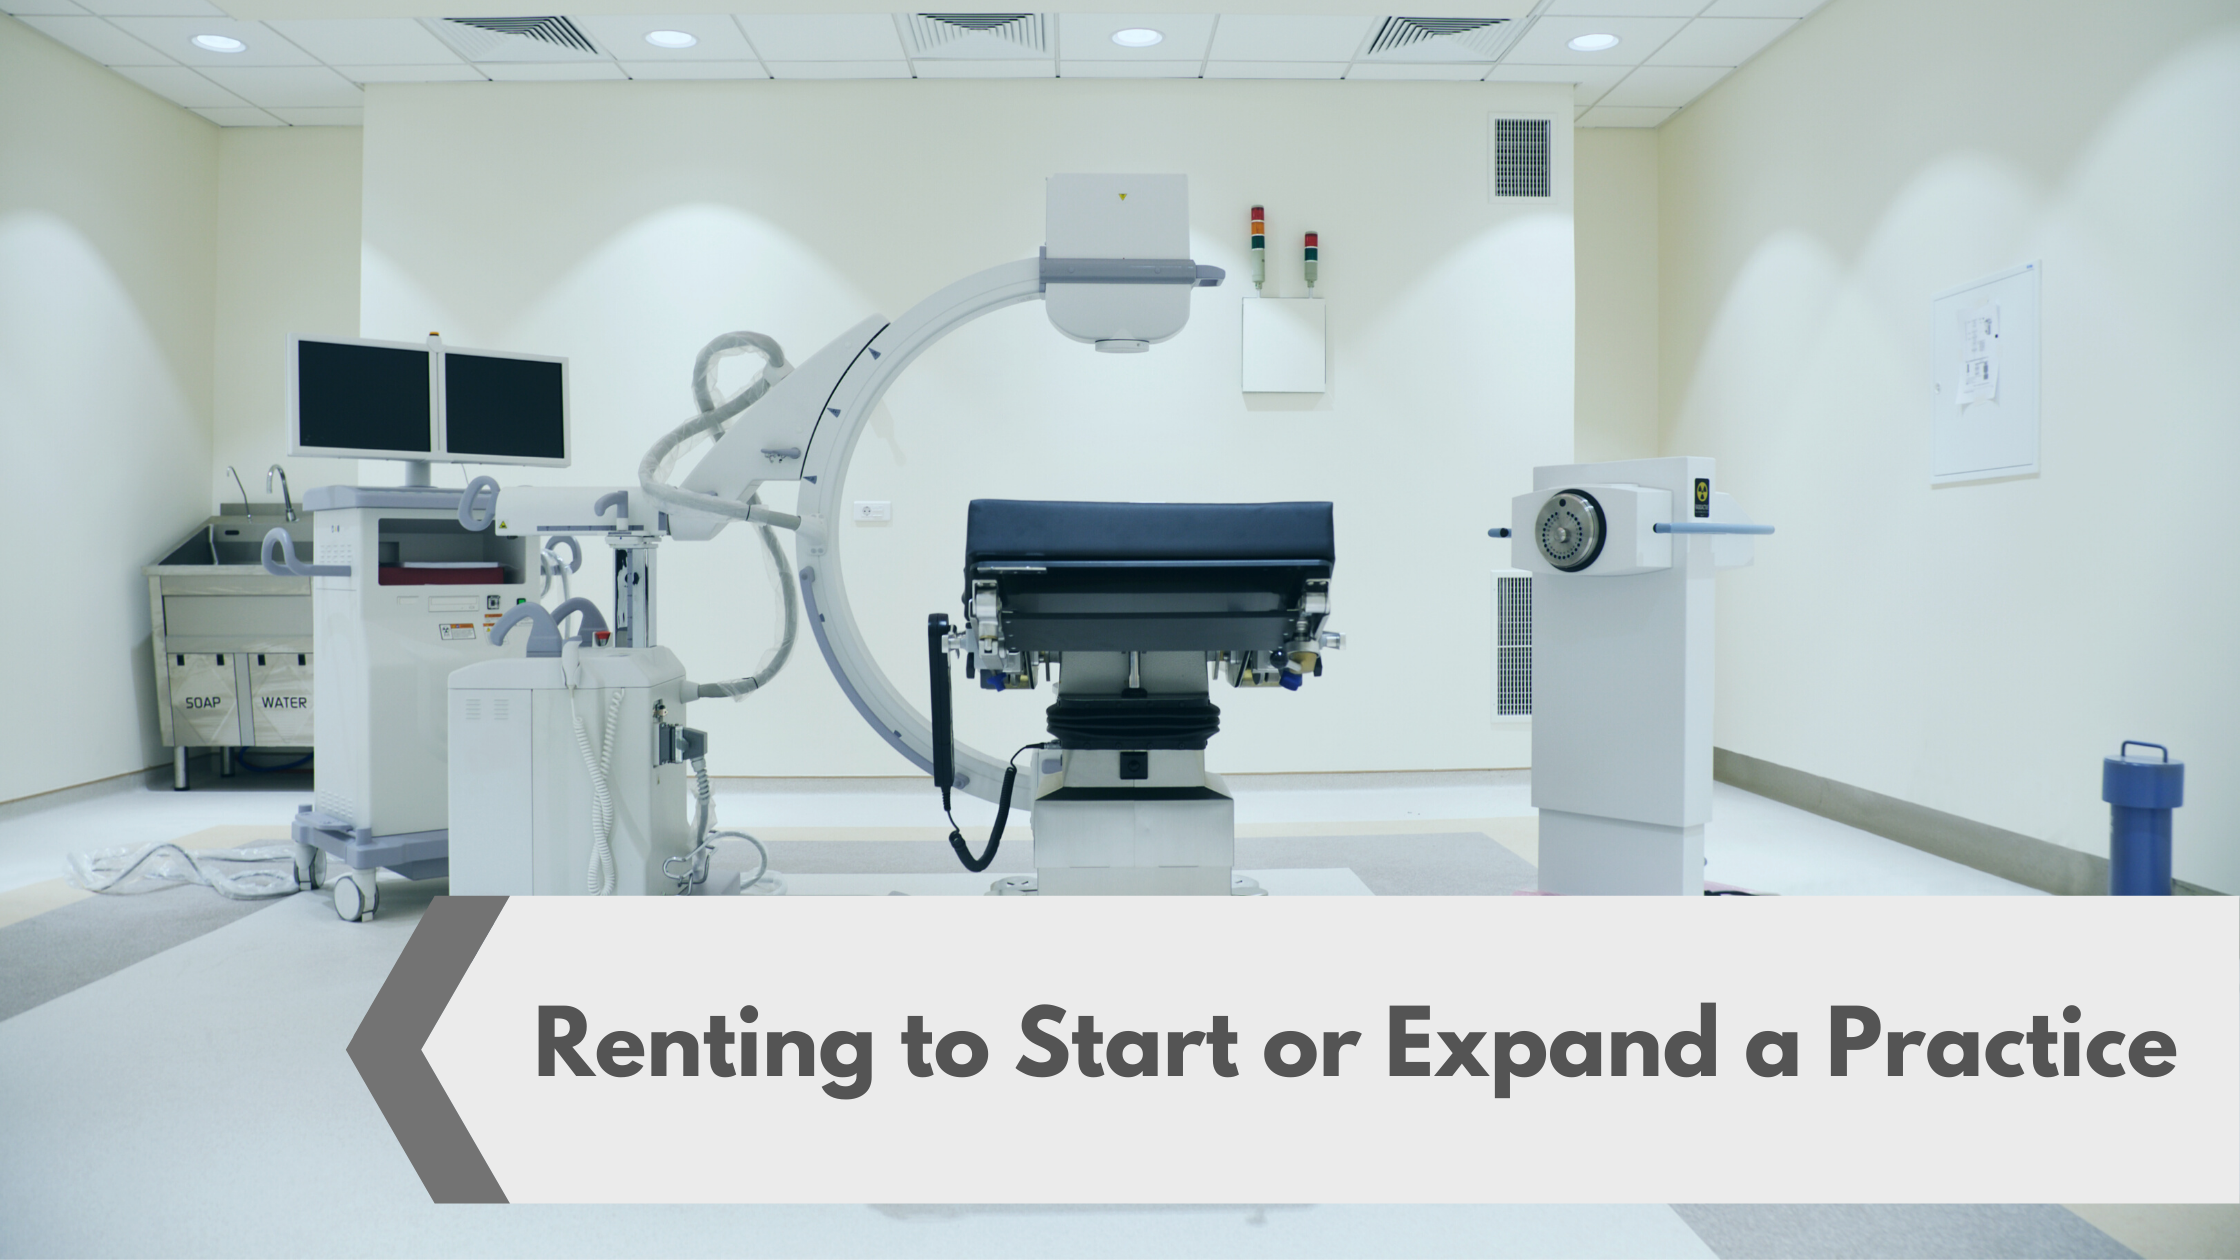 Renting to Start or Expand a Practice